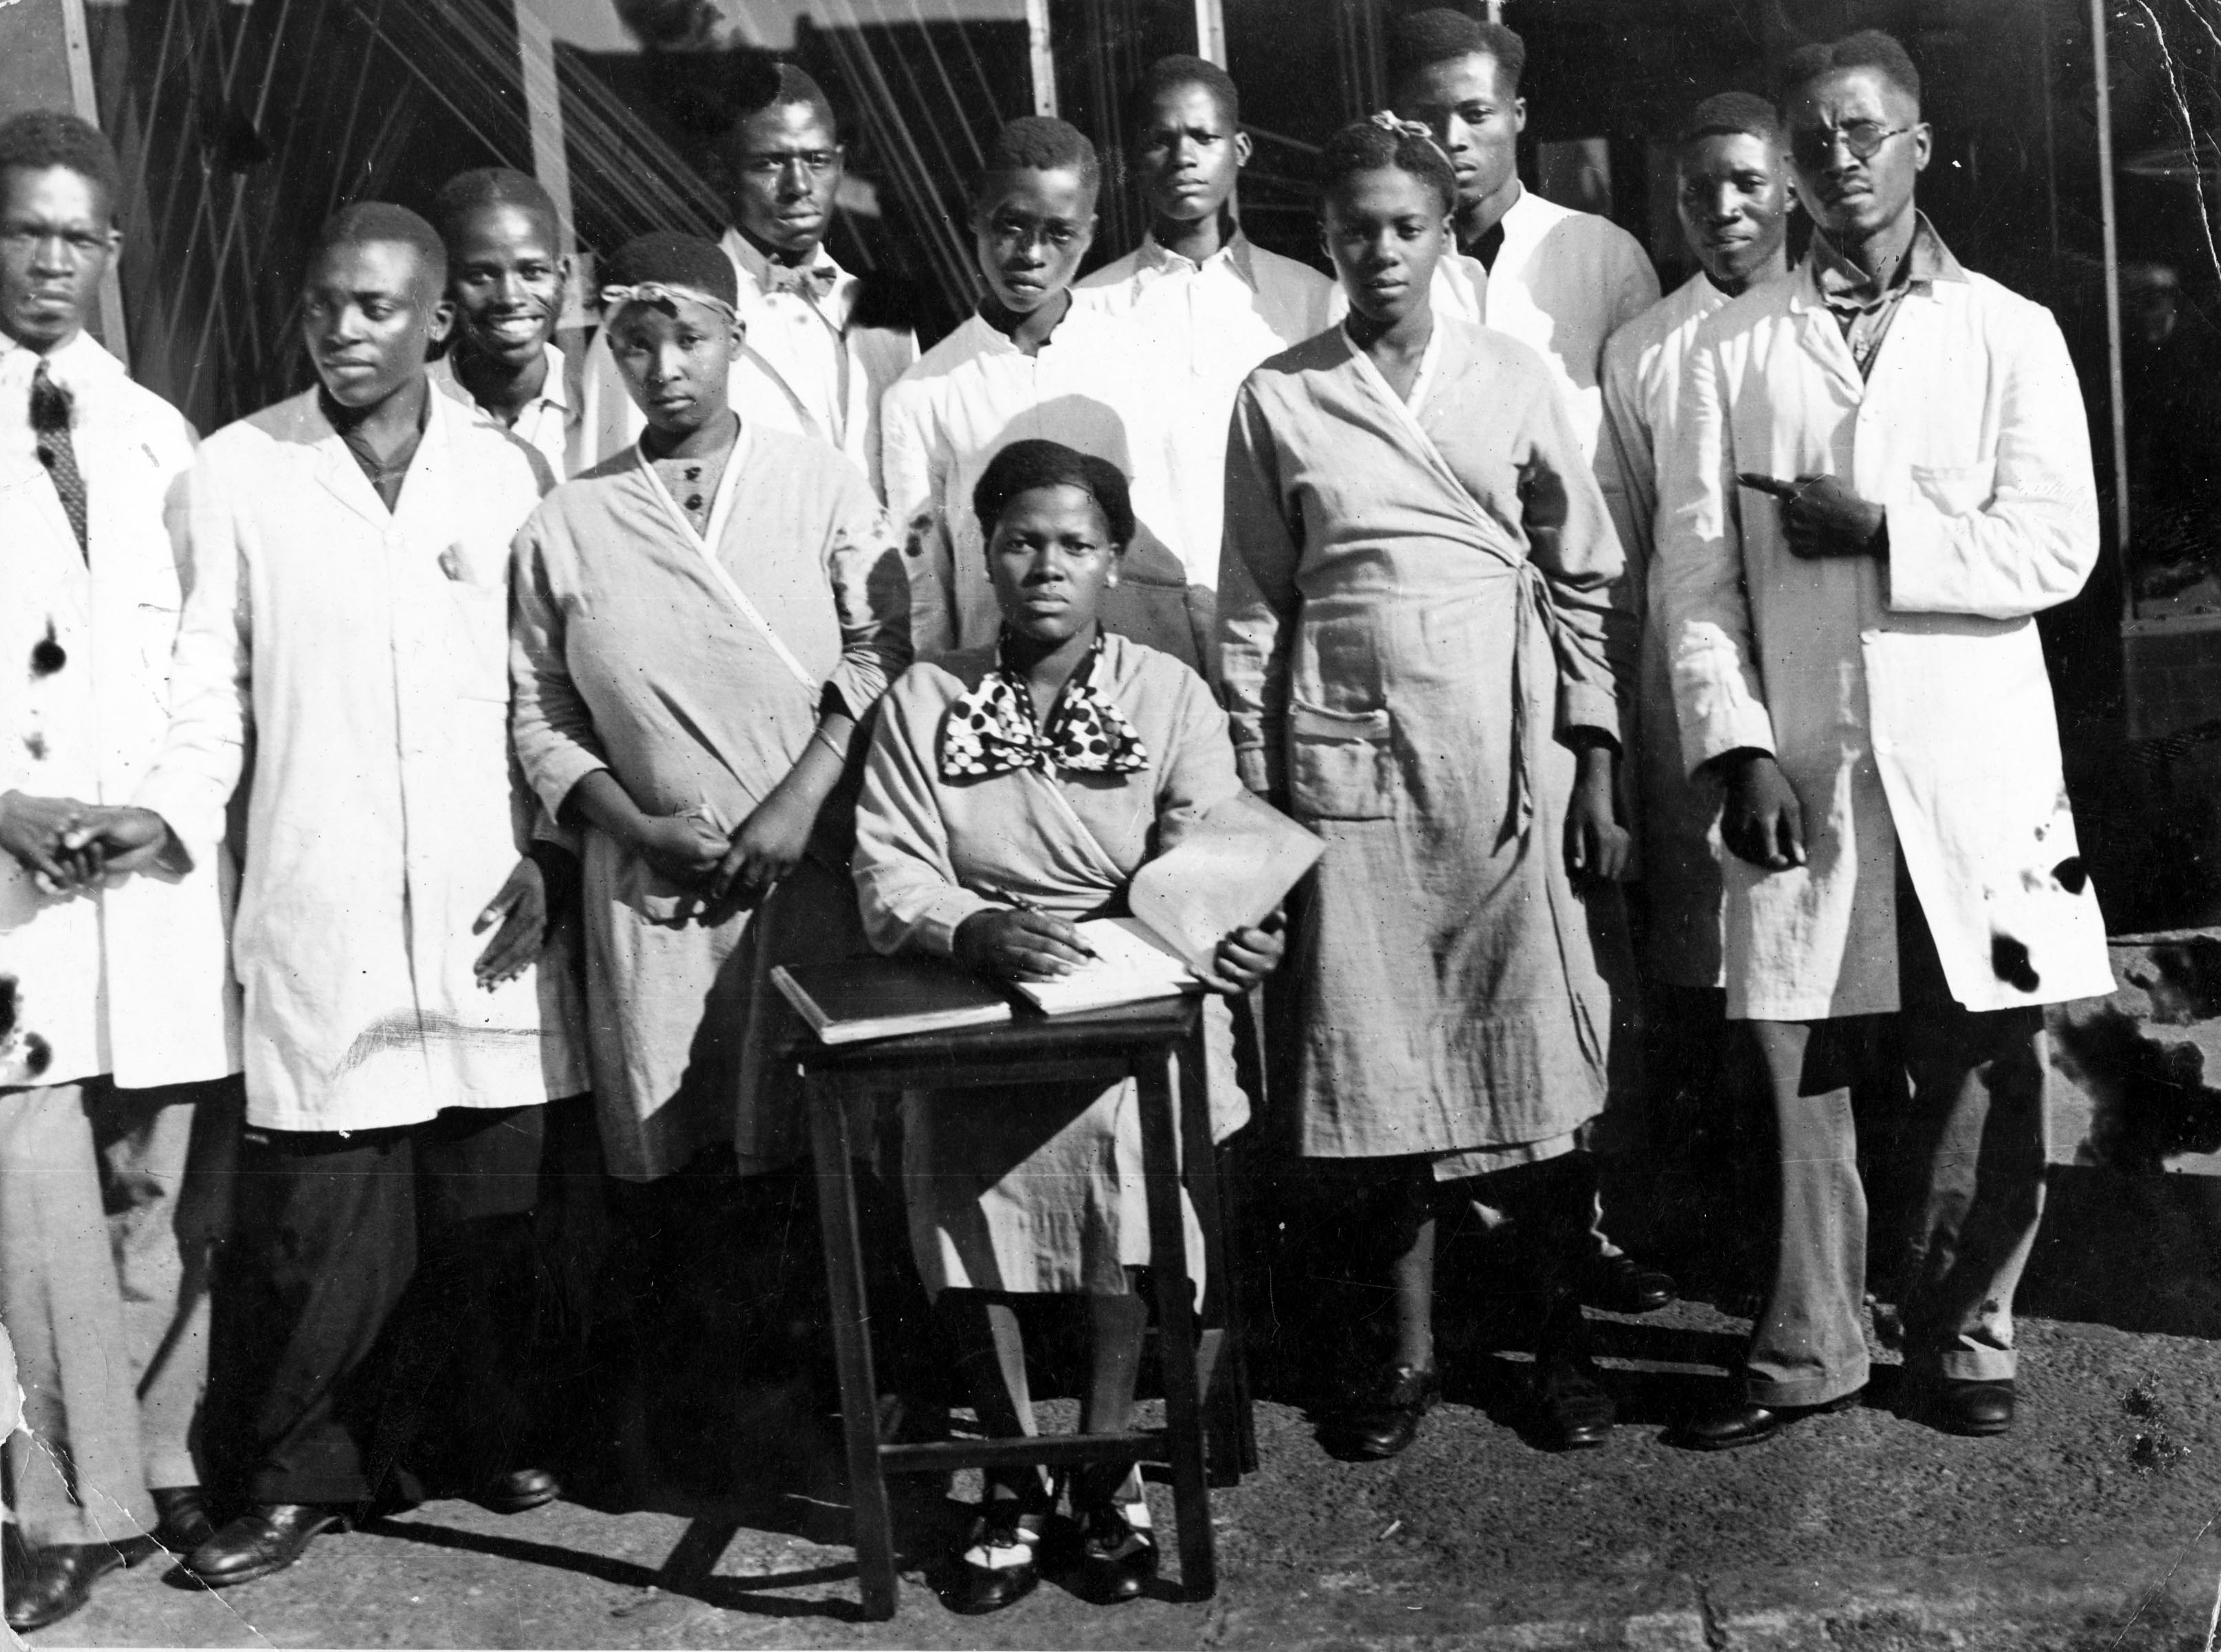 Undated: Members of the Industrial and Commercial Workers' Union staff. (Image courtesy of UNISA archives)